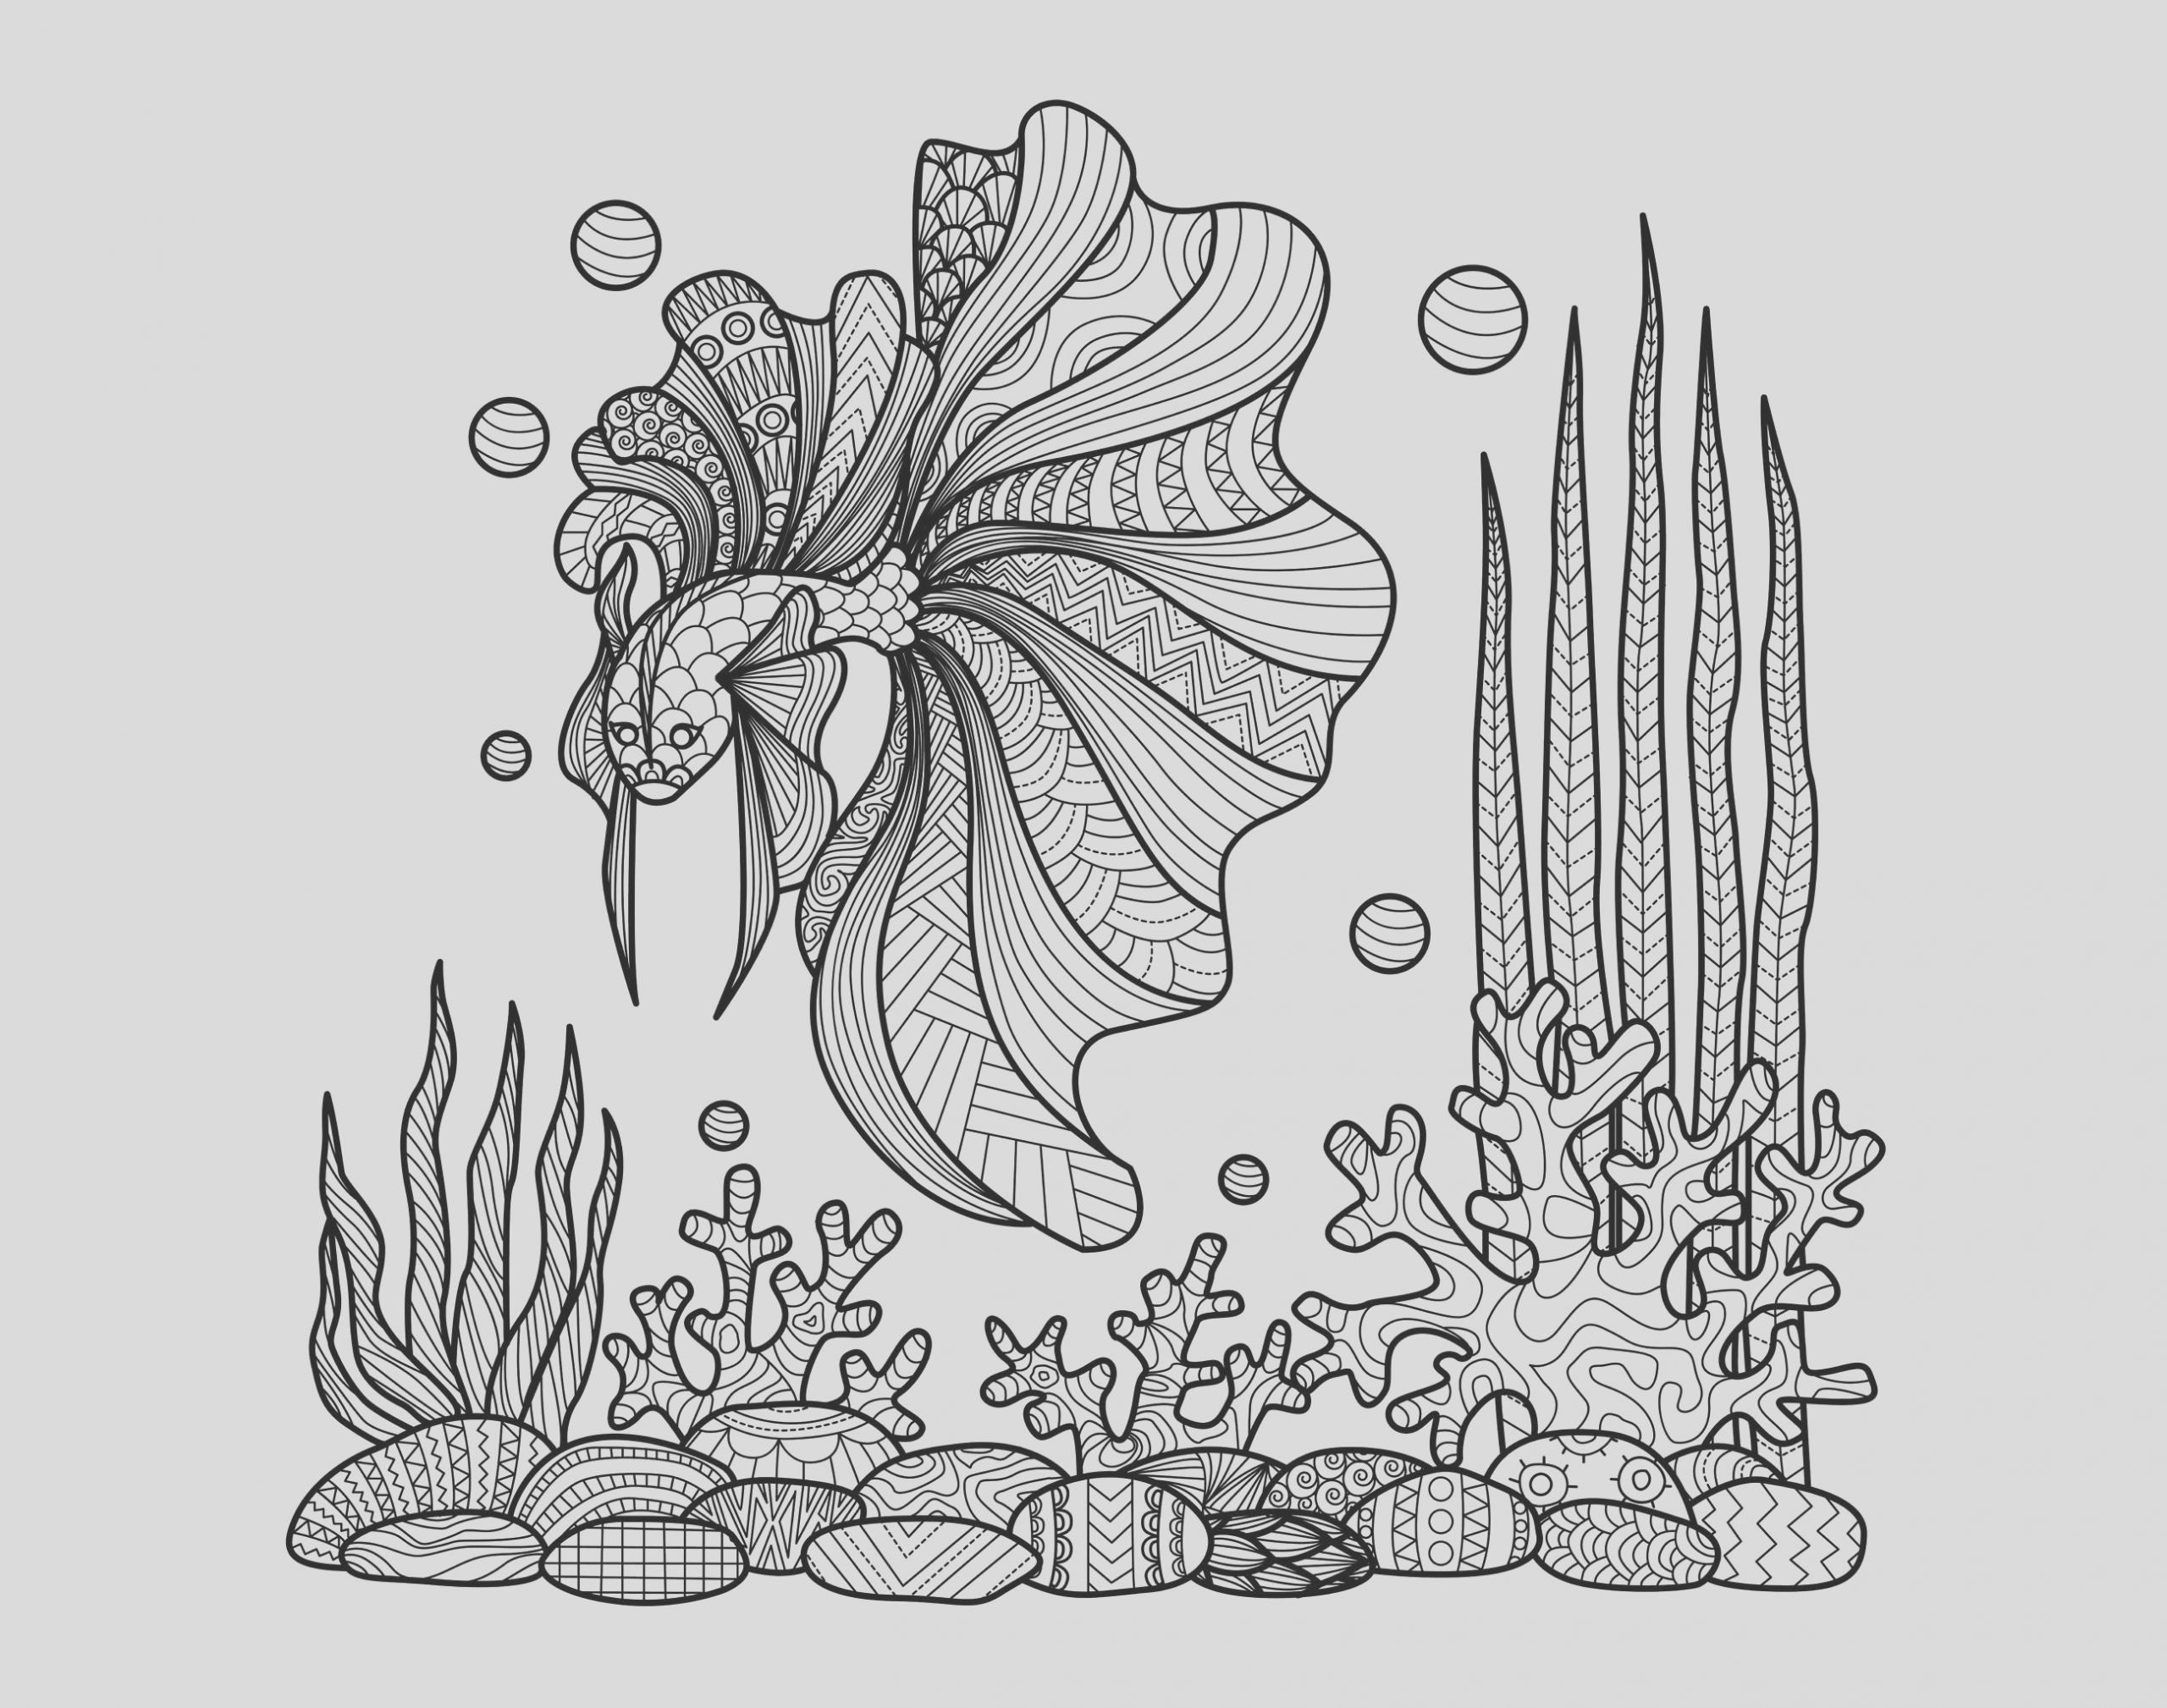 image=water worlds coloring adult zentangle fish on corals by bimdeedee 1